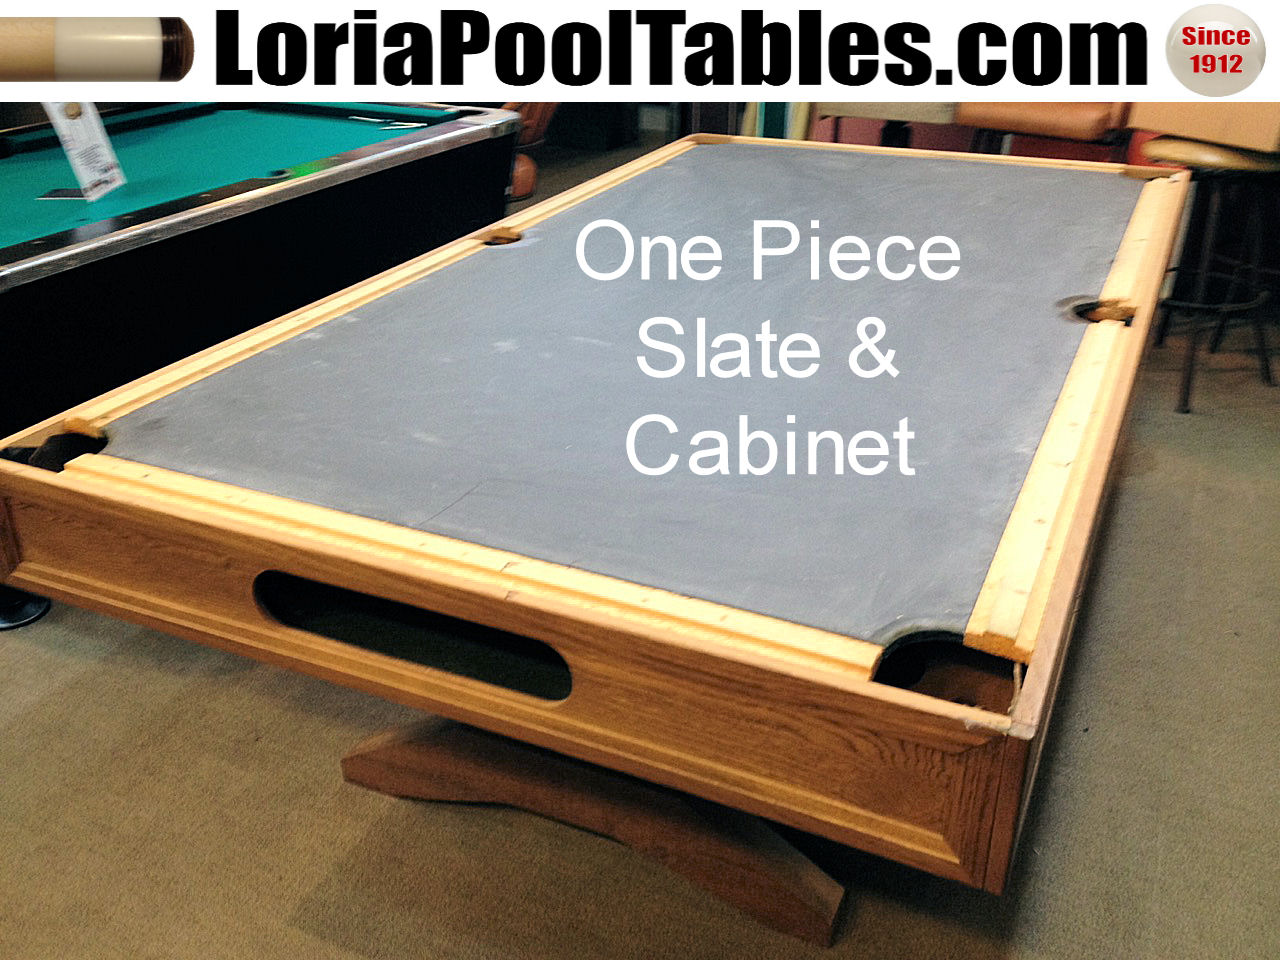 Setting Up A Pool Table Sold Floor Model Pre Owned 8ft Pool Table 1pcslate